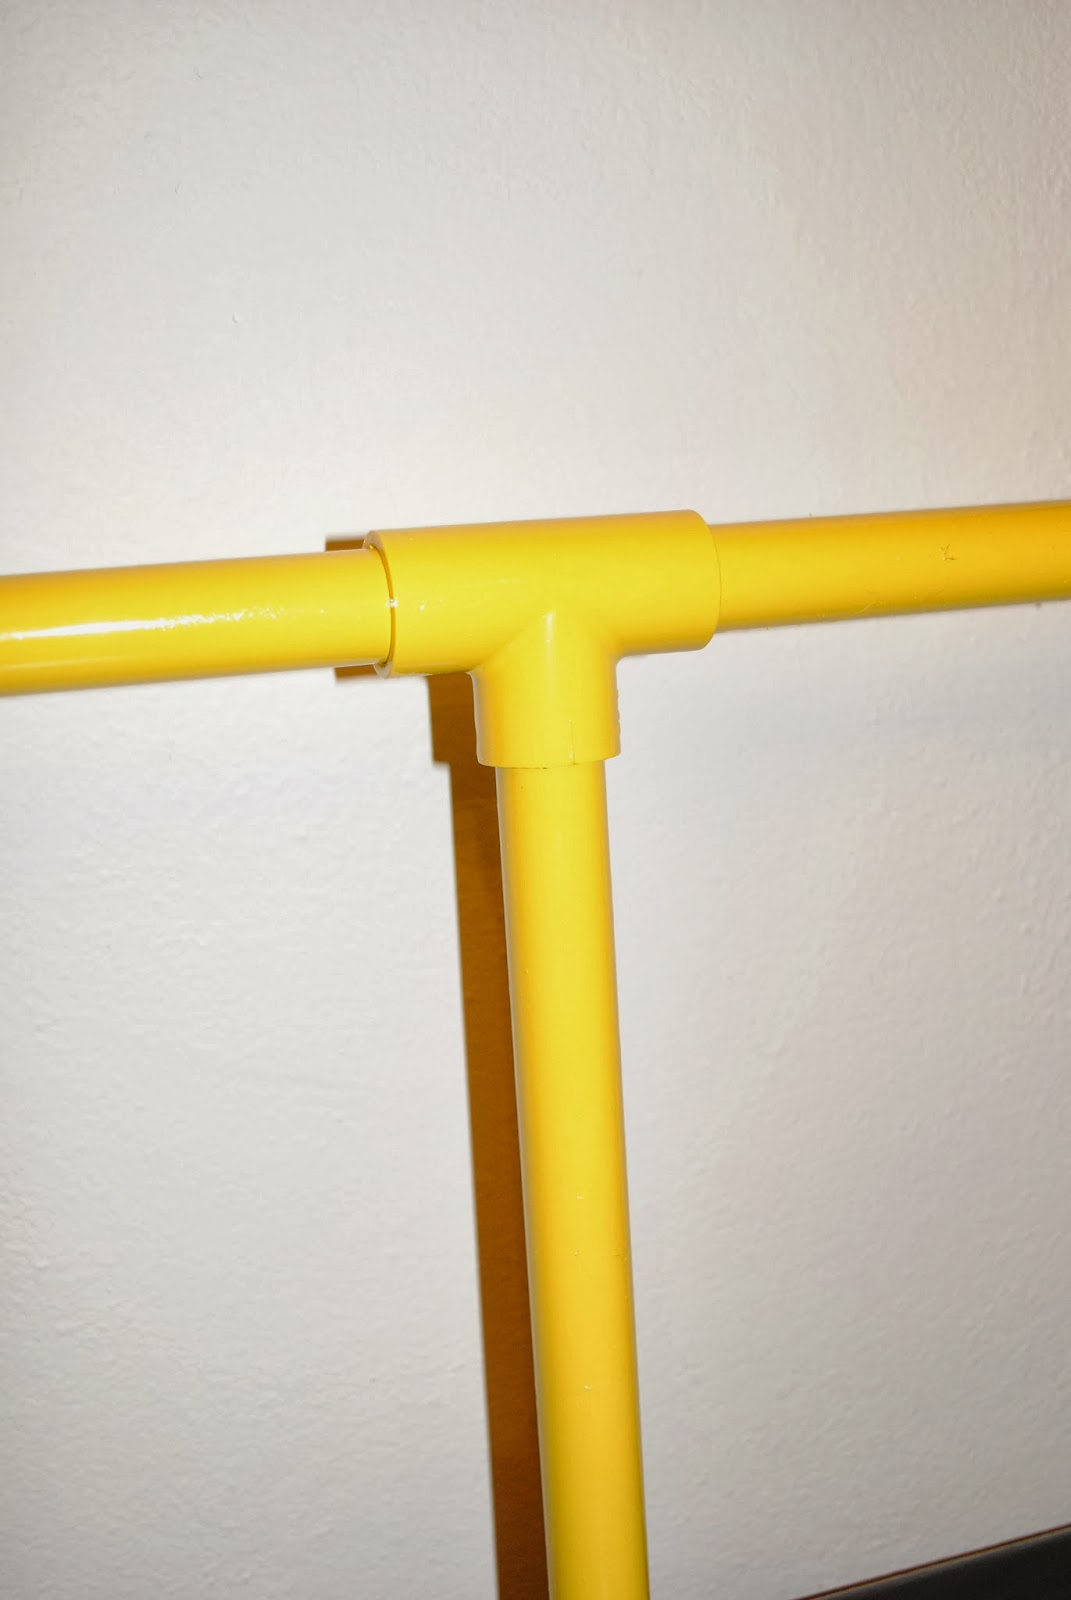 Can You Paint Pvc Pipe - Acpfoto